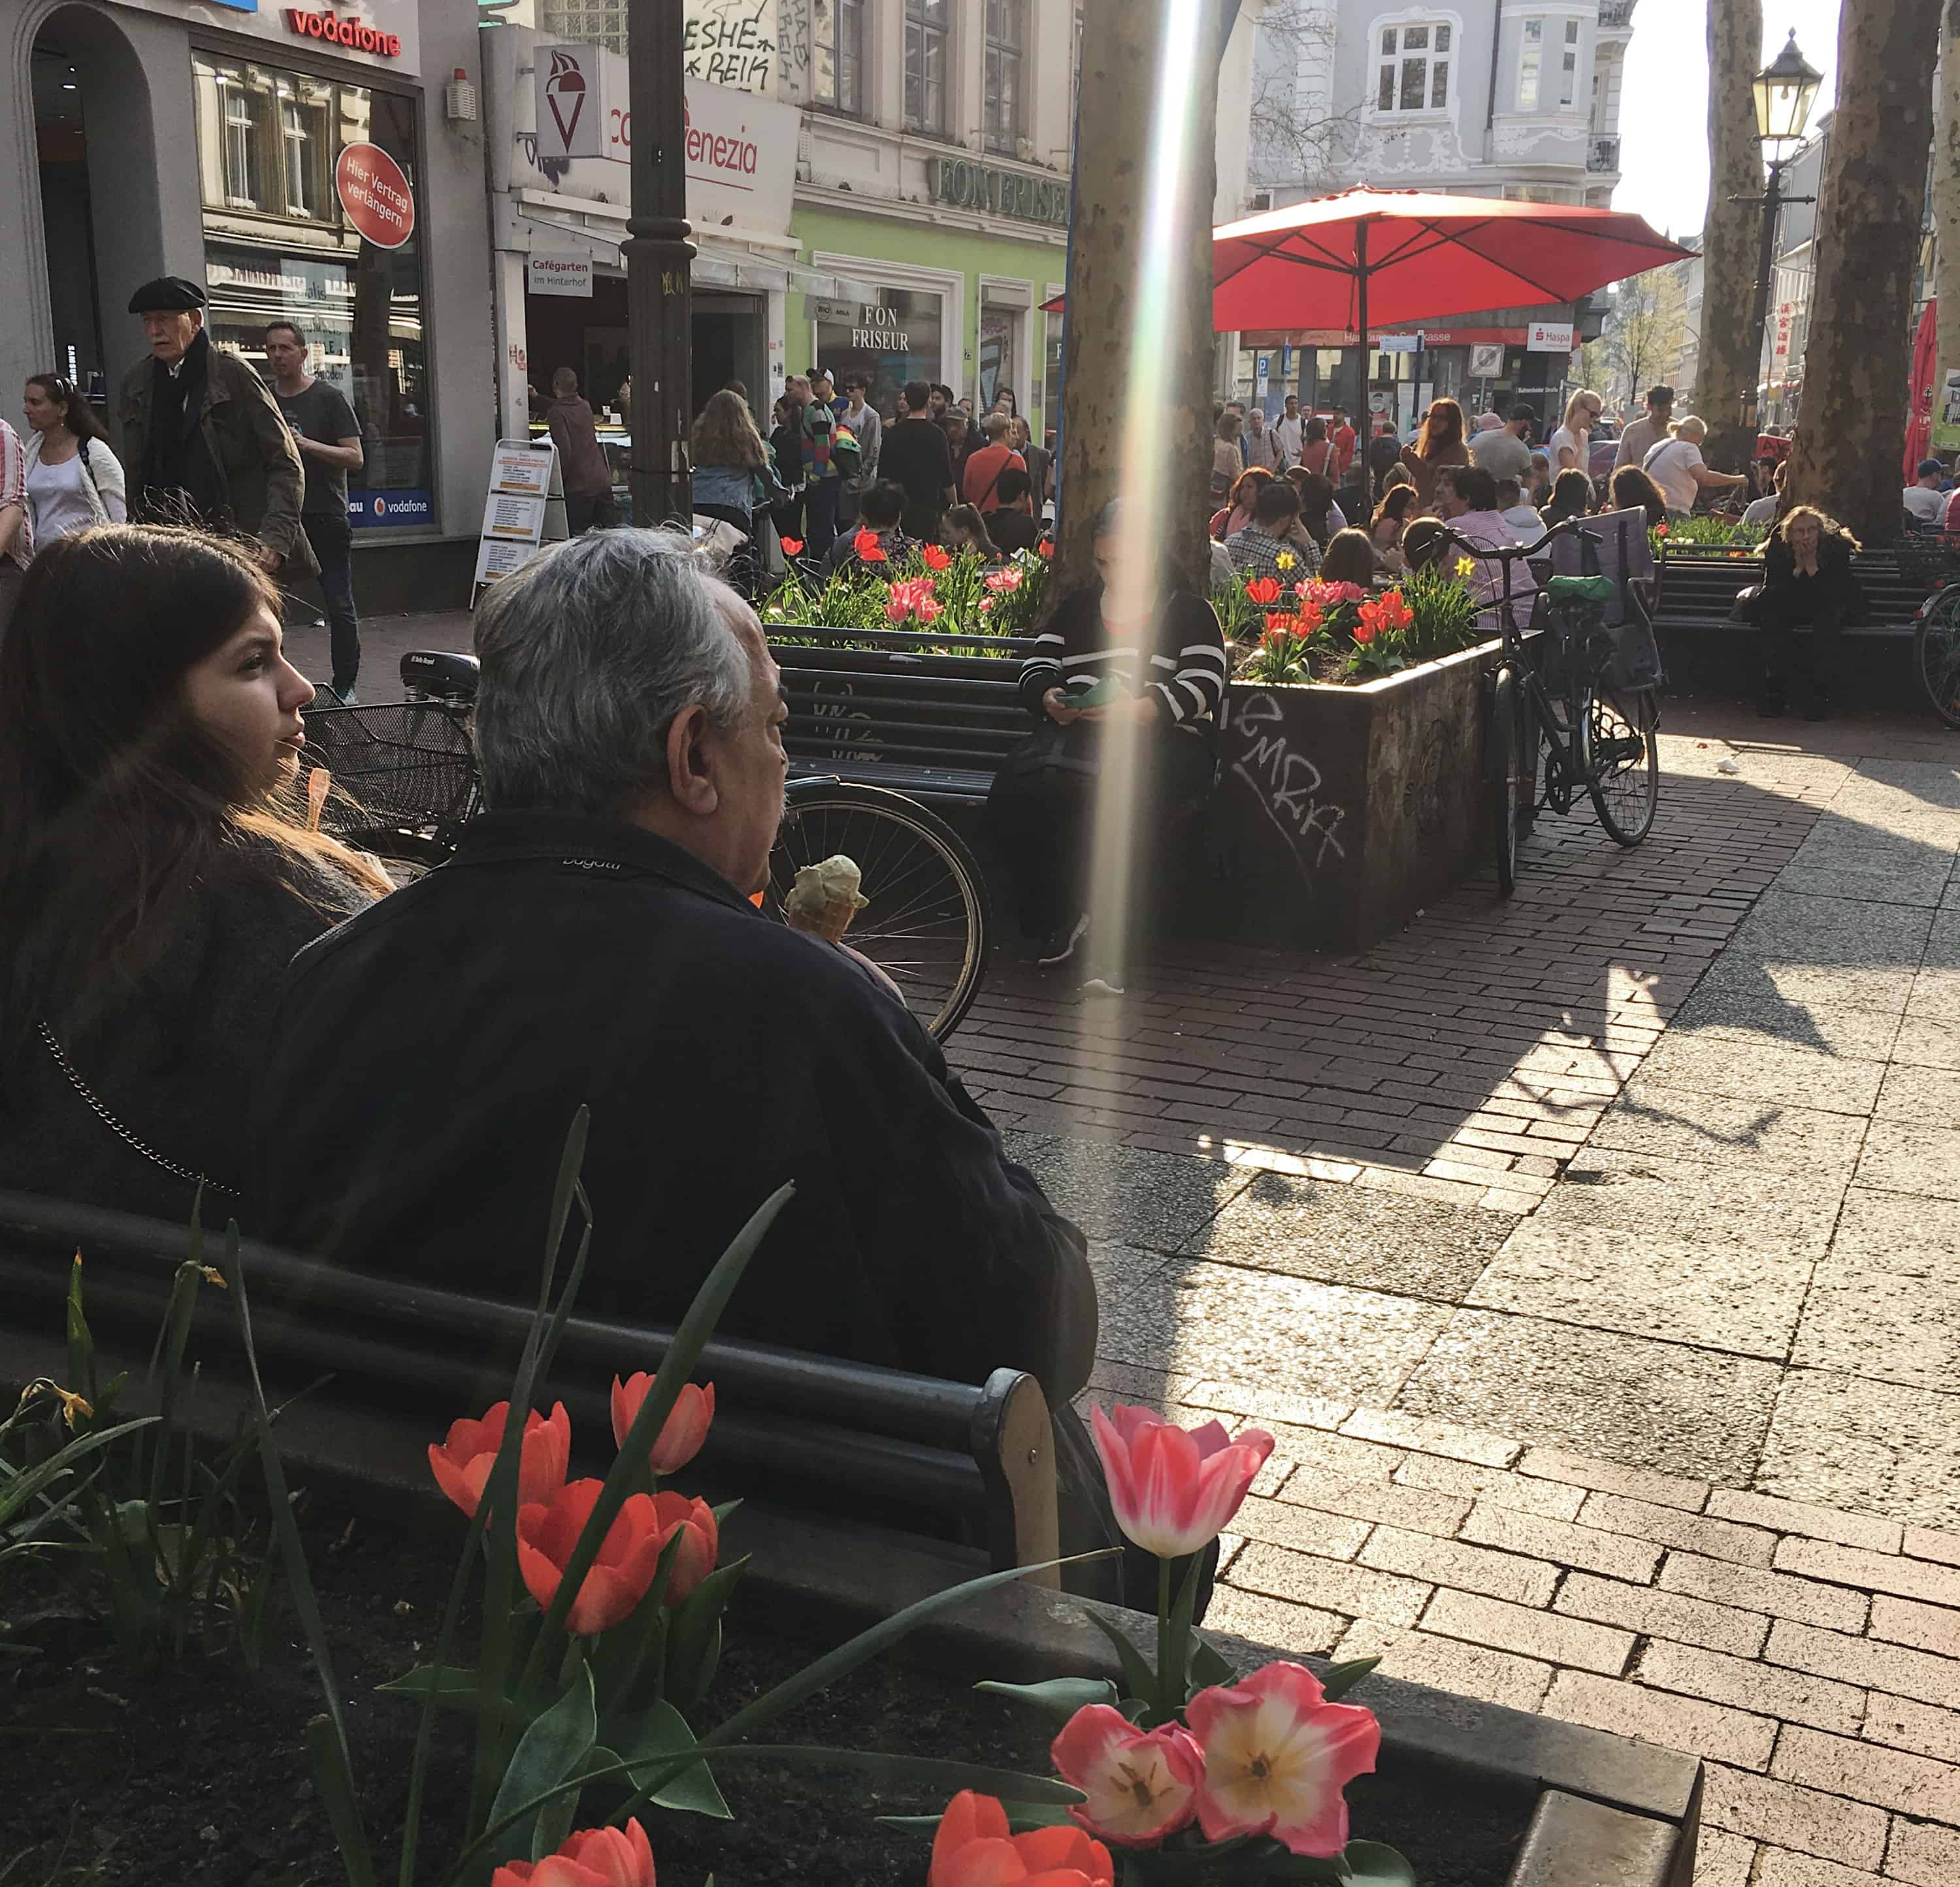 Crowds of people walking the streets in the Altona neighborhood on a sunny spring day in Hamburg, Germany